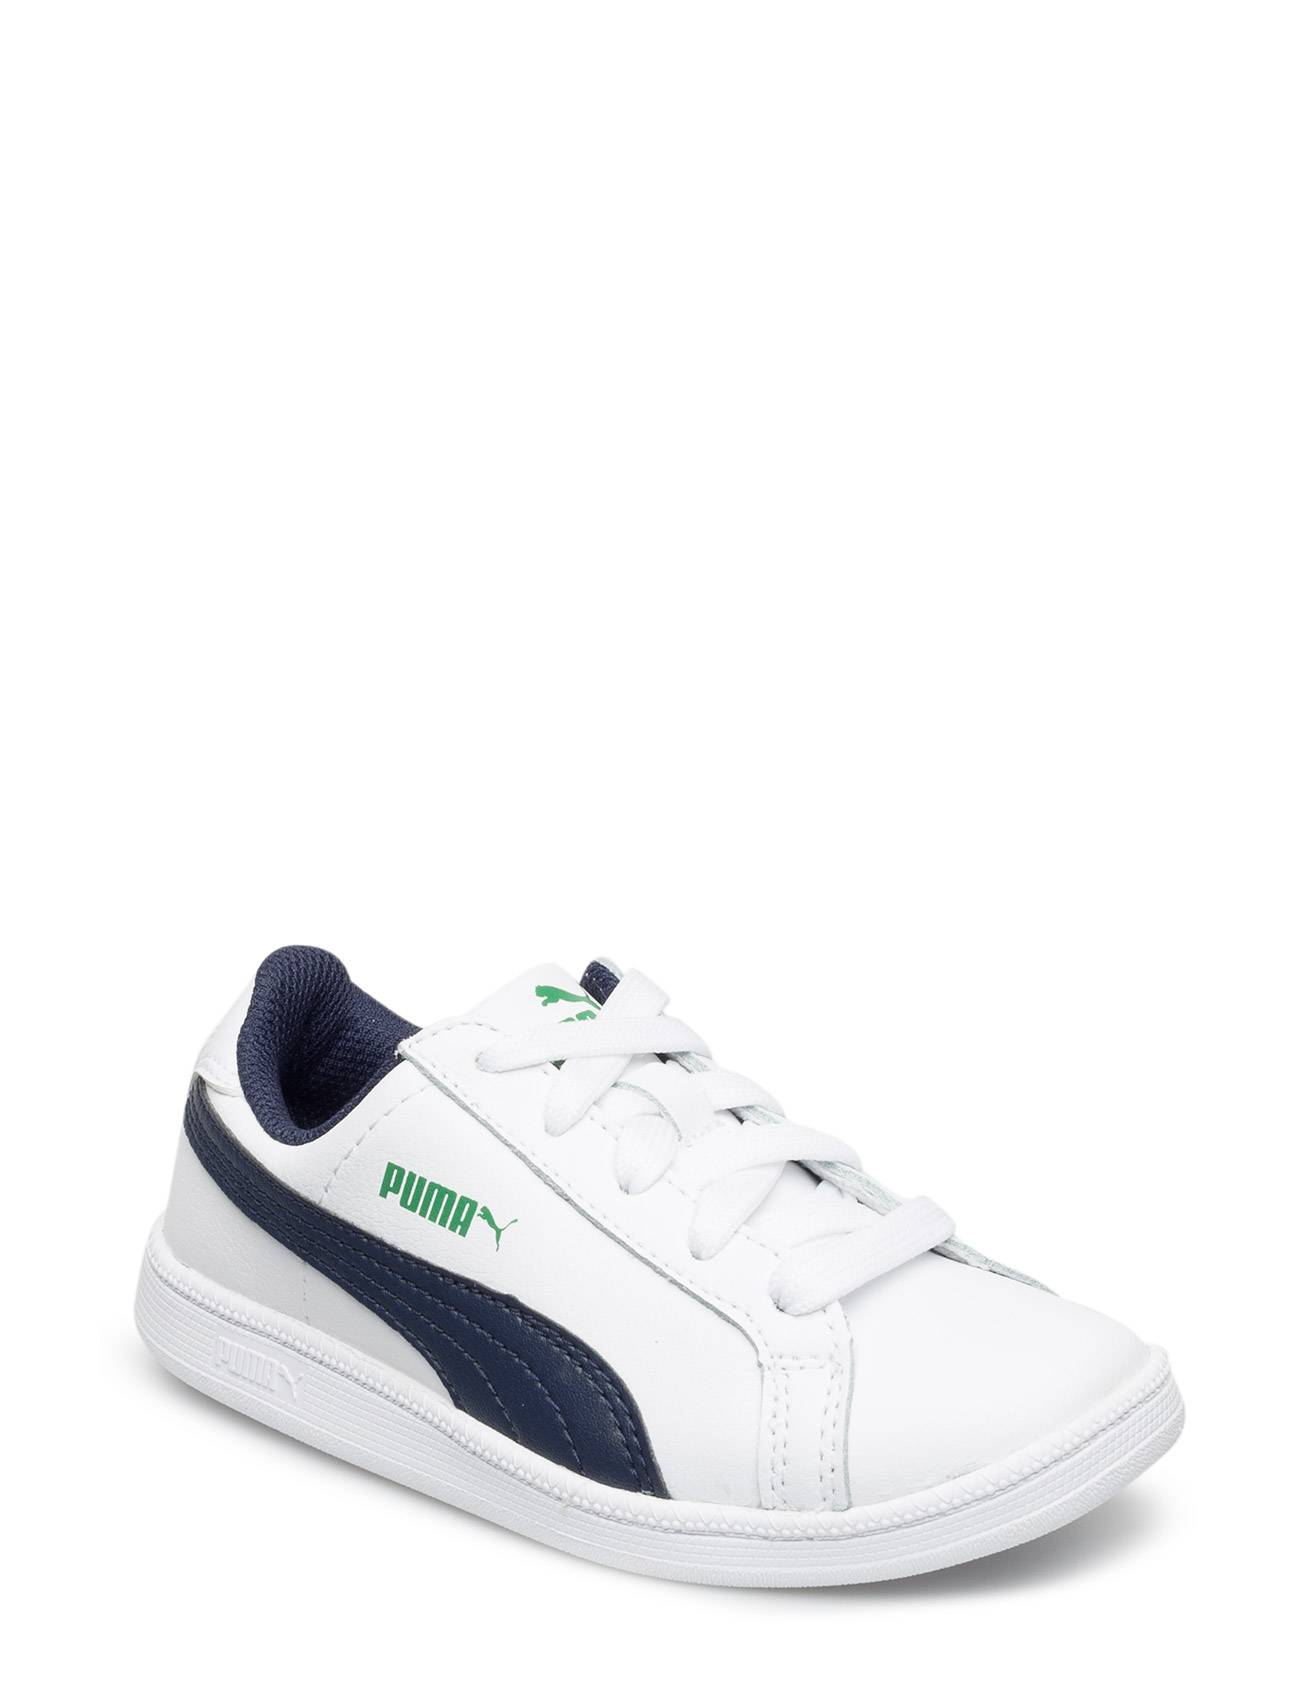 Puma Smash Fun L Ps